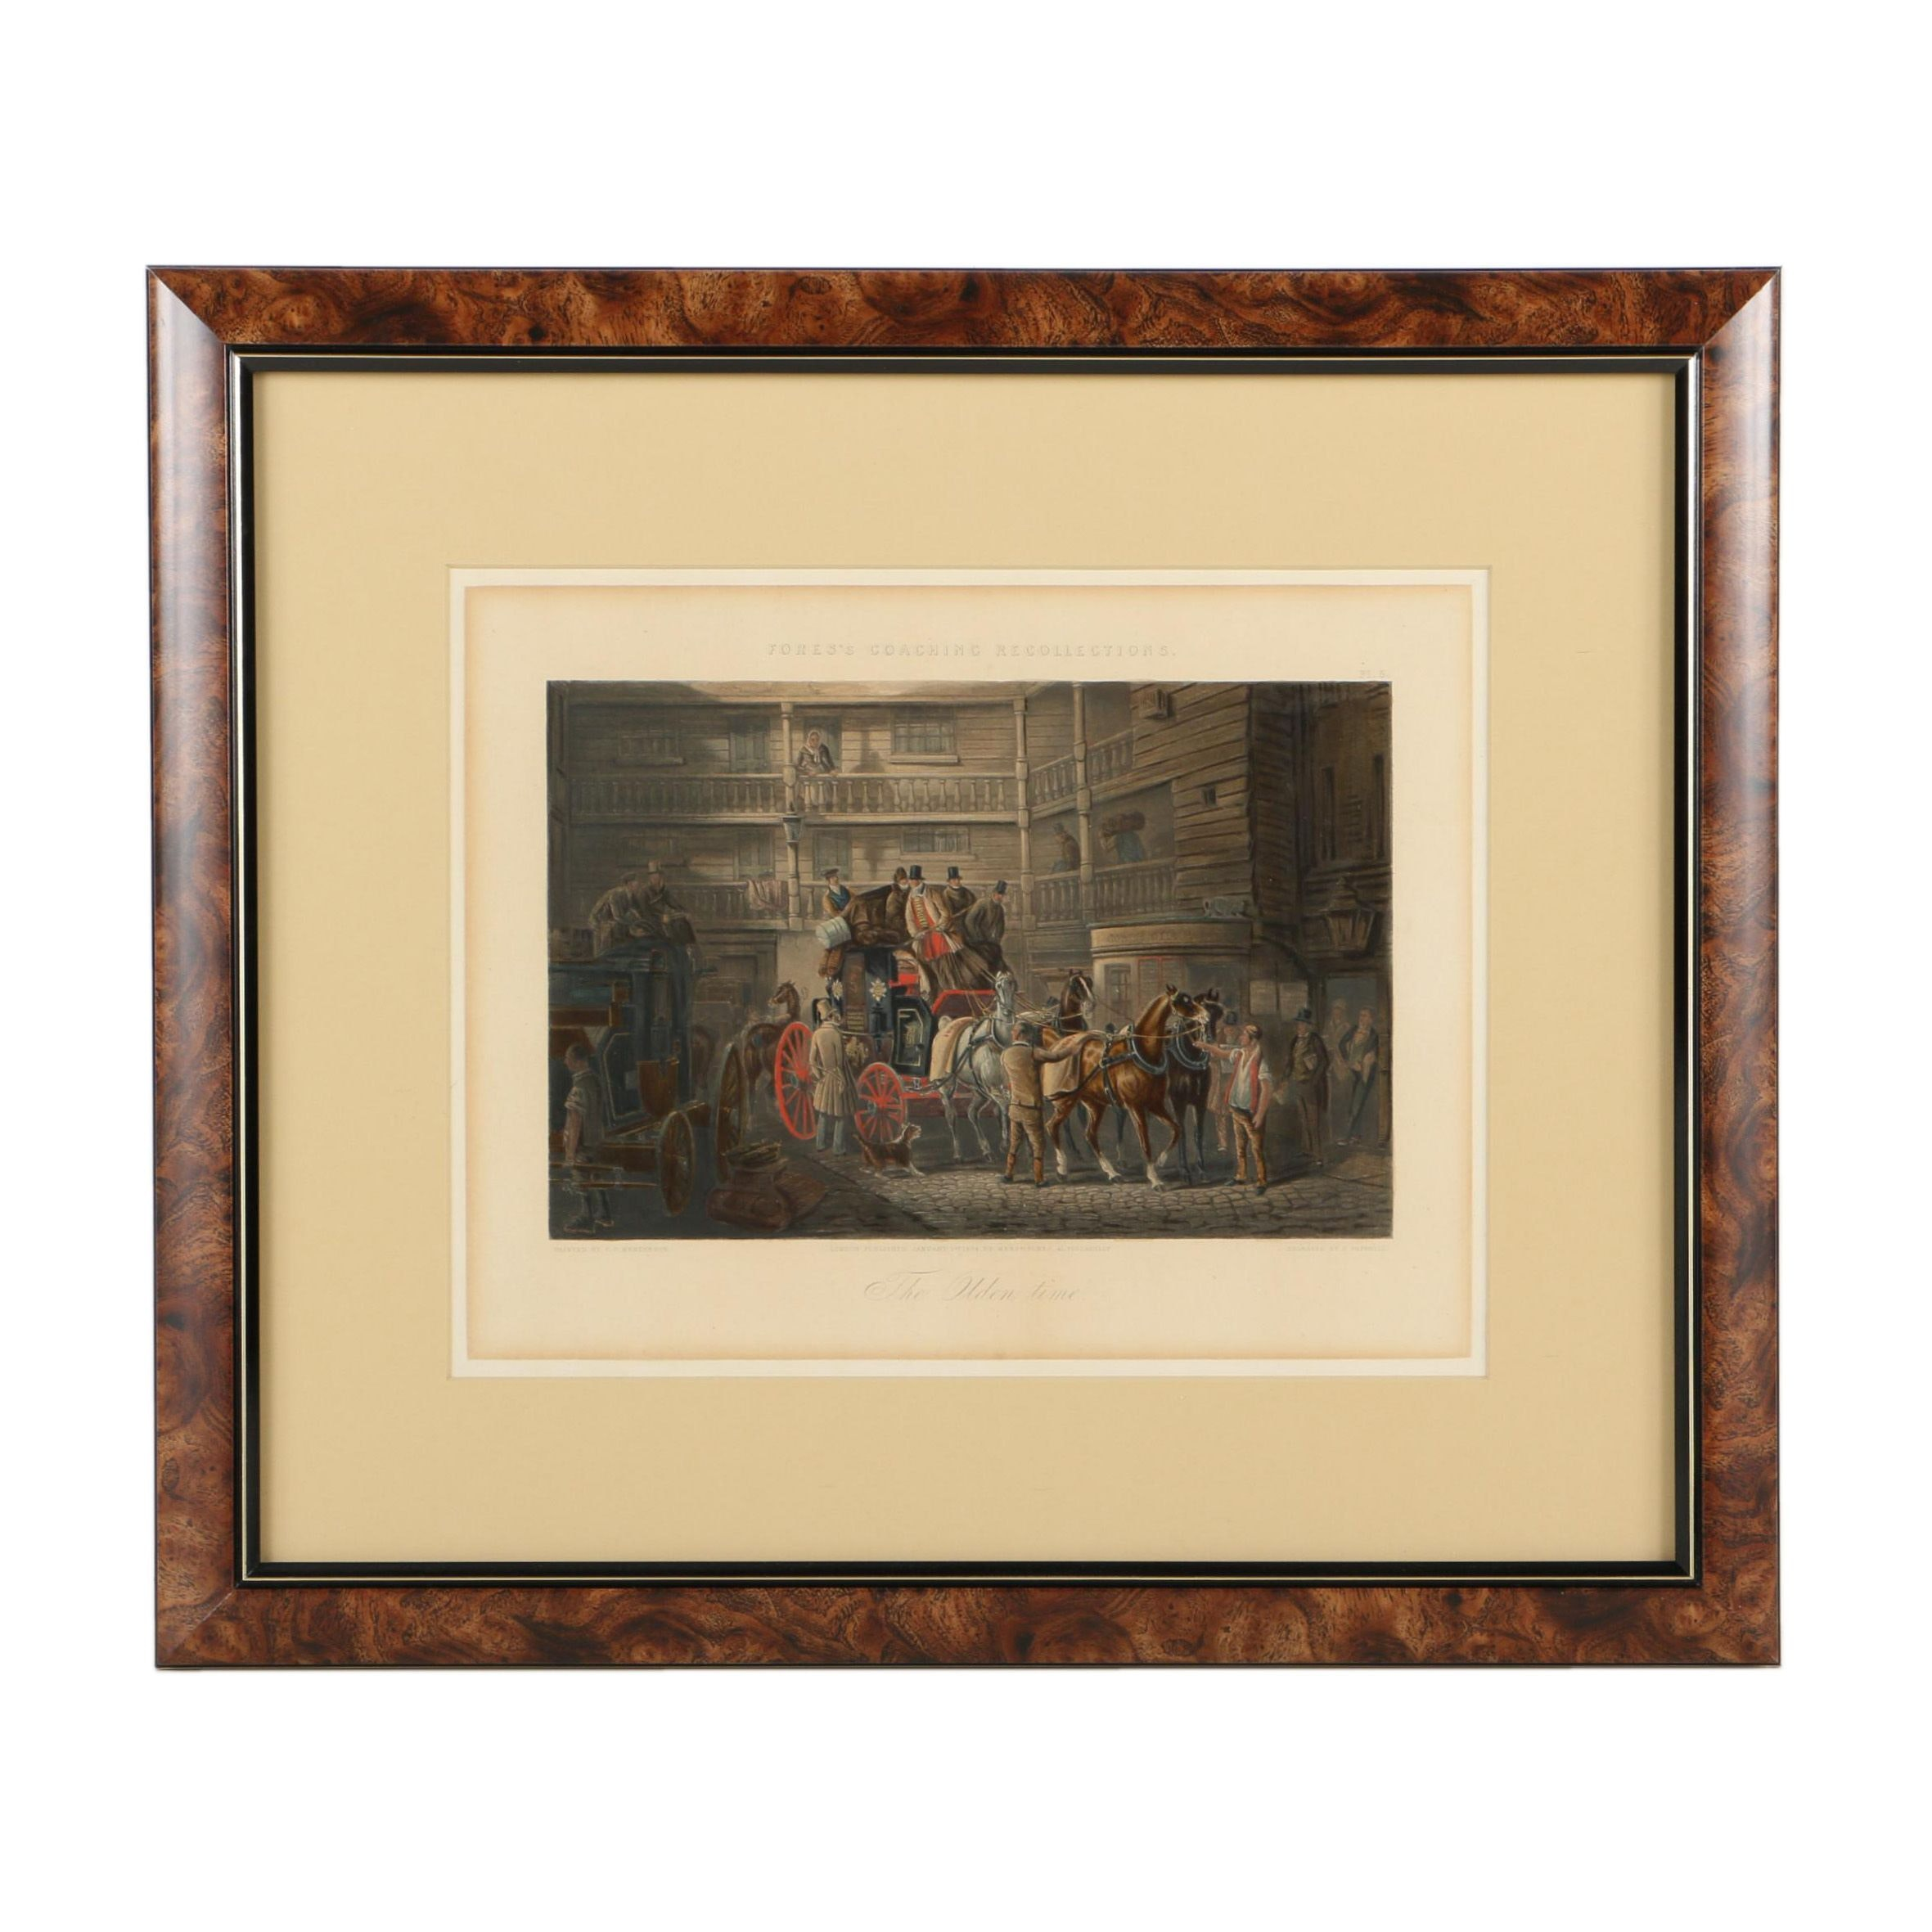 "Henry Papprill Hand-Colored Engraving on Paper ""The Olden Time"""